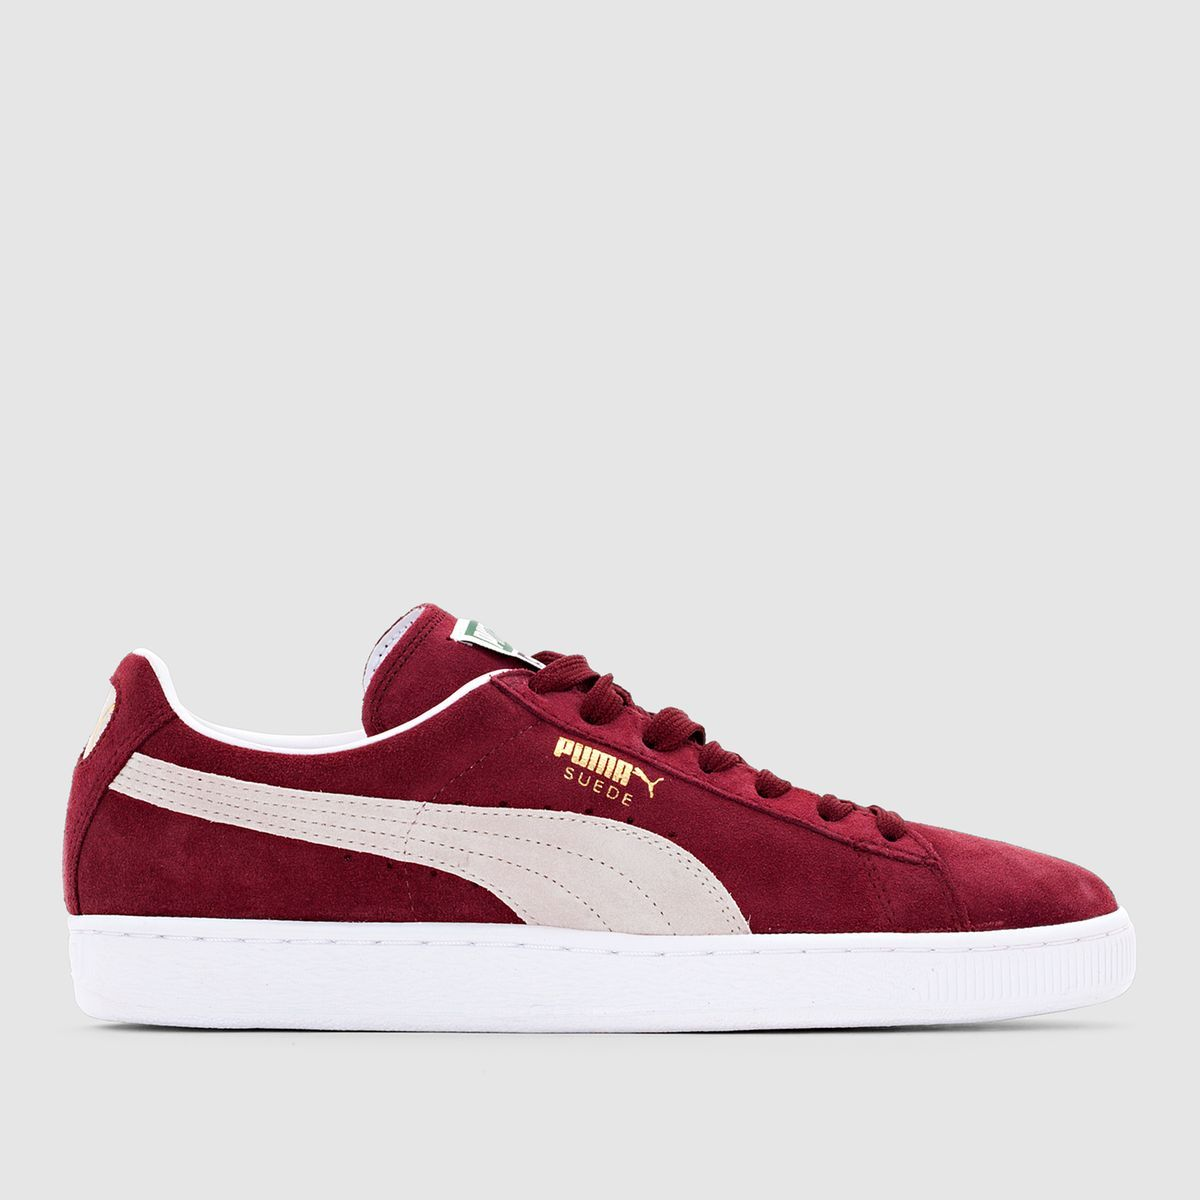 0dfac8f09 Baskets Suede Classic + in 2019 | Products | Chaussure puma ...